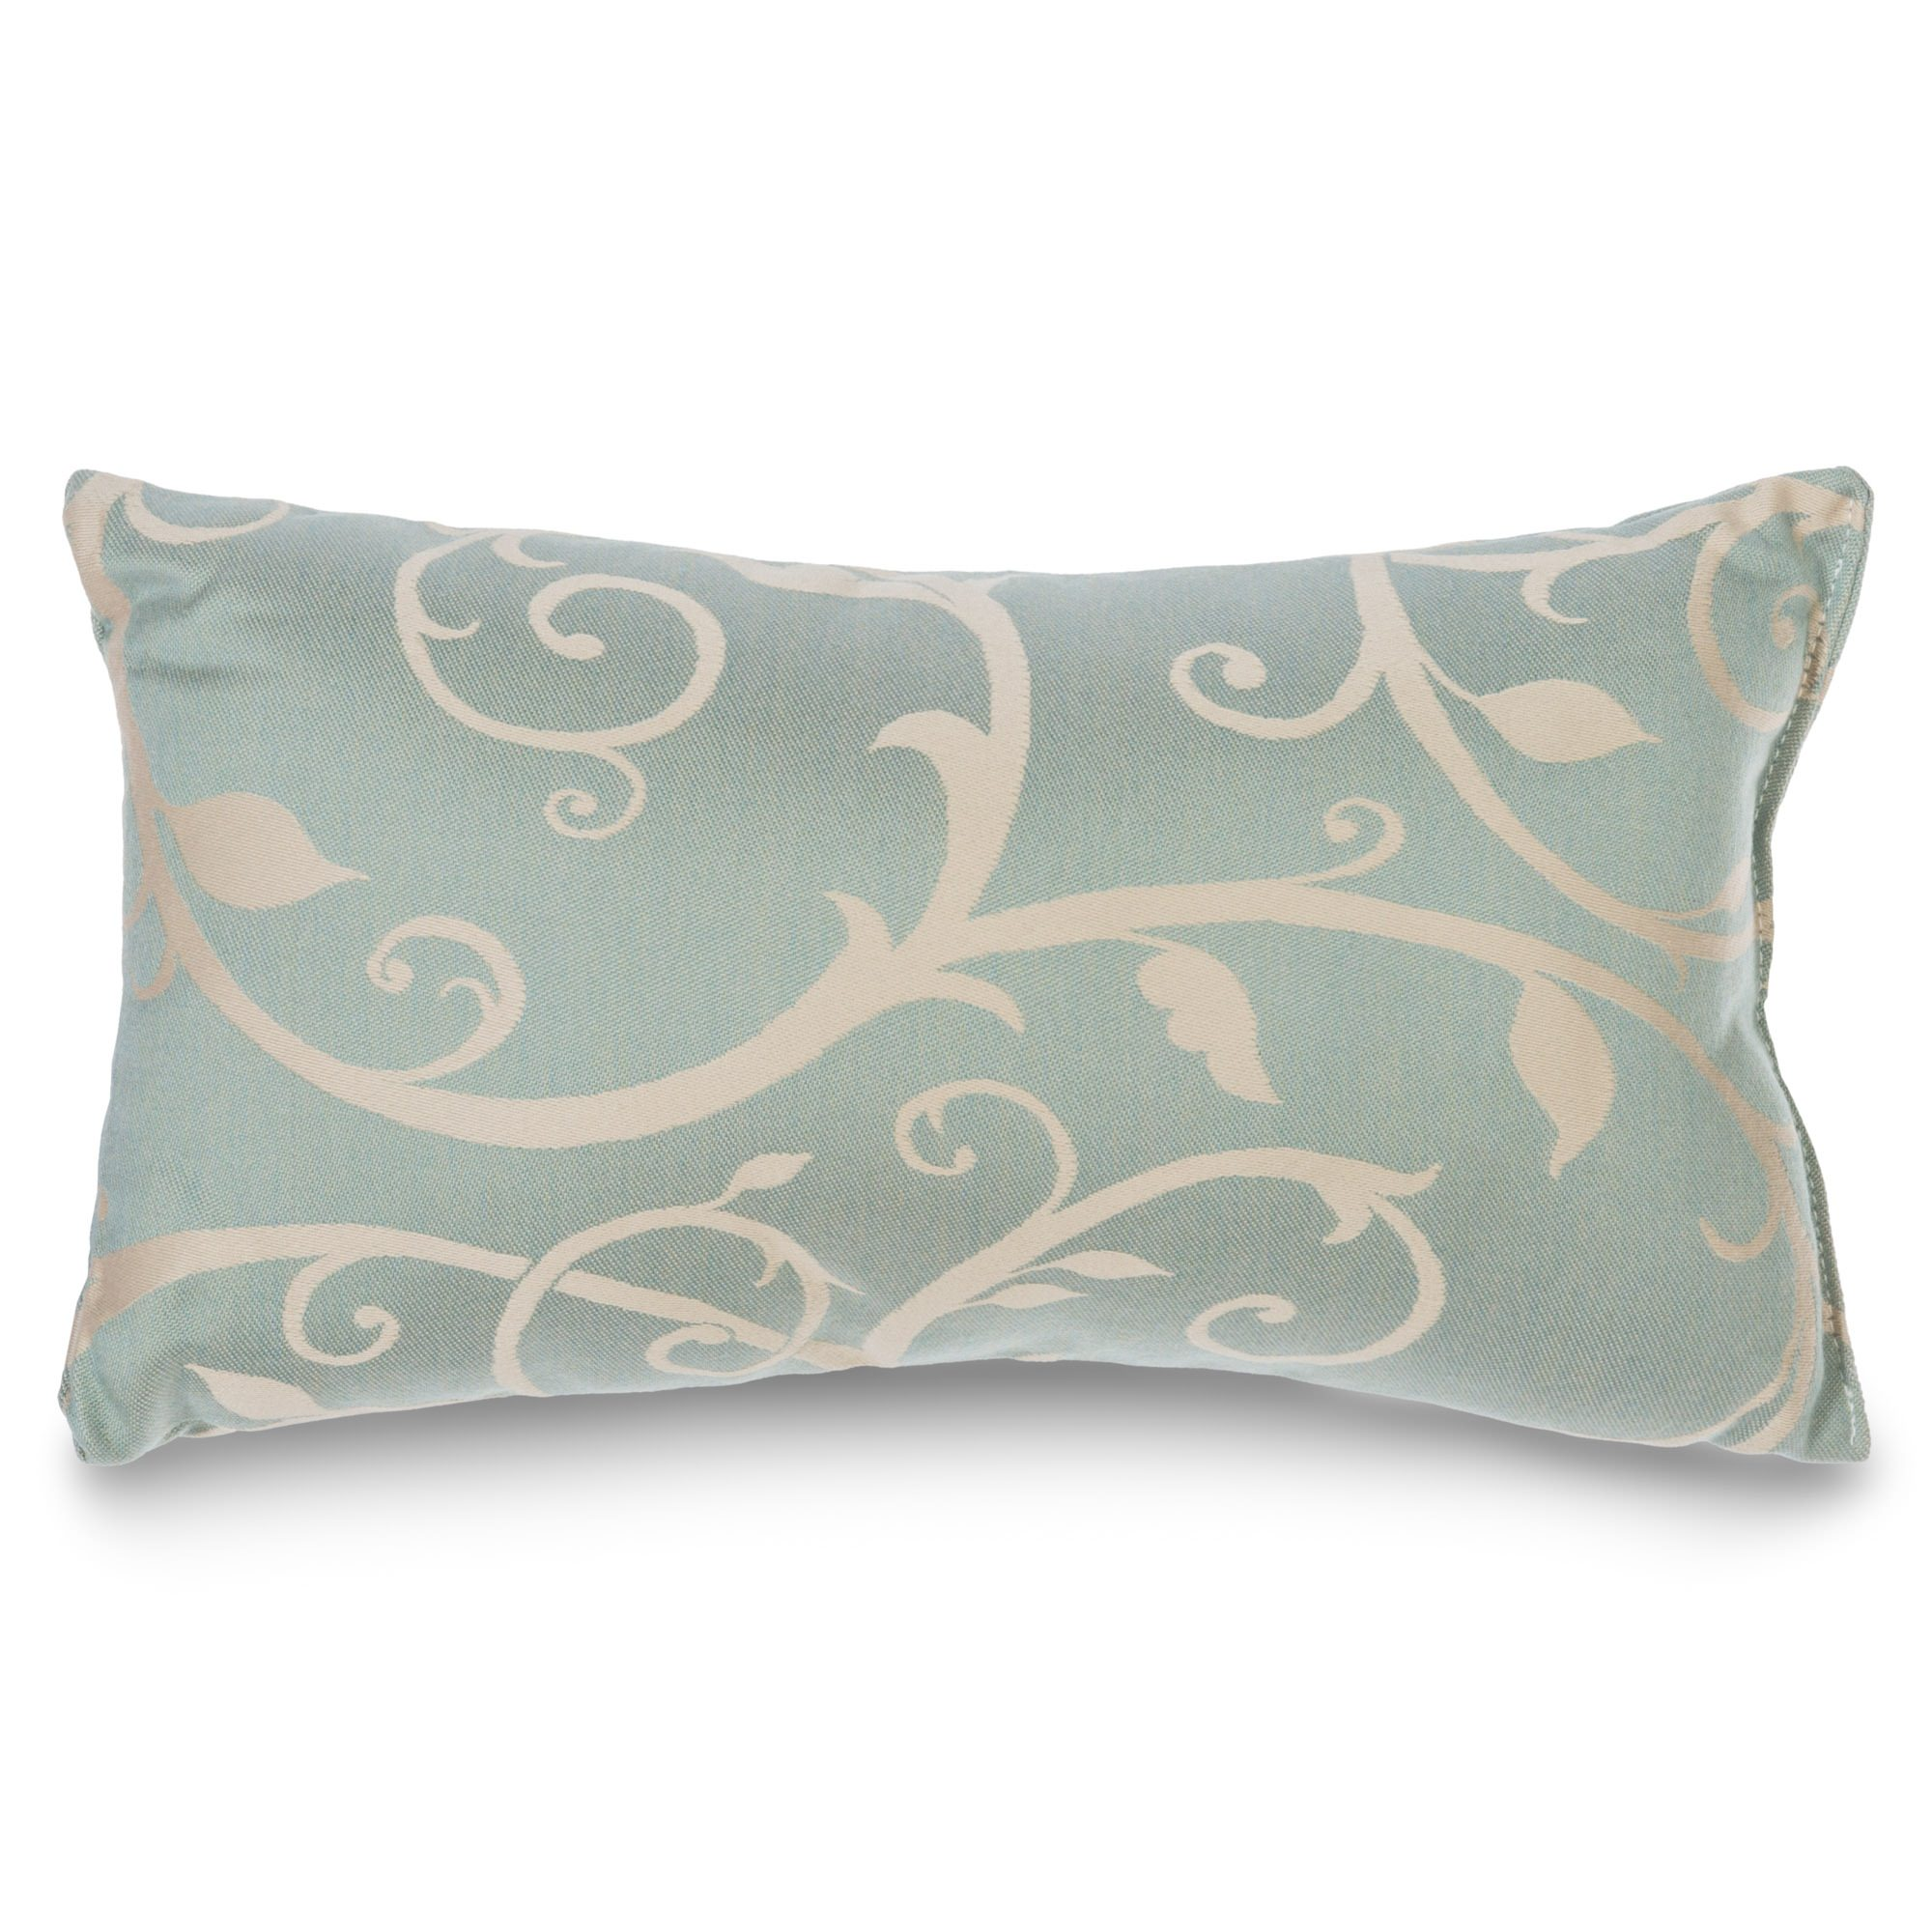 Sunbrella Throw Pillows Clearance : Cabaret Blue Haze Sunbrella Outdoor Throw PillowHatteras Hammocks DFOHome